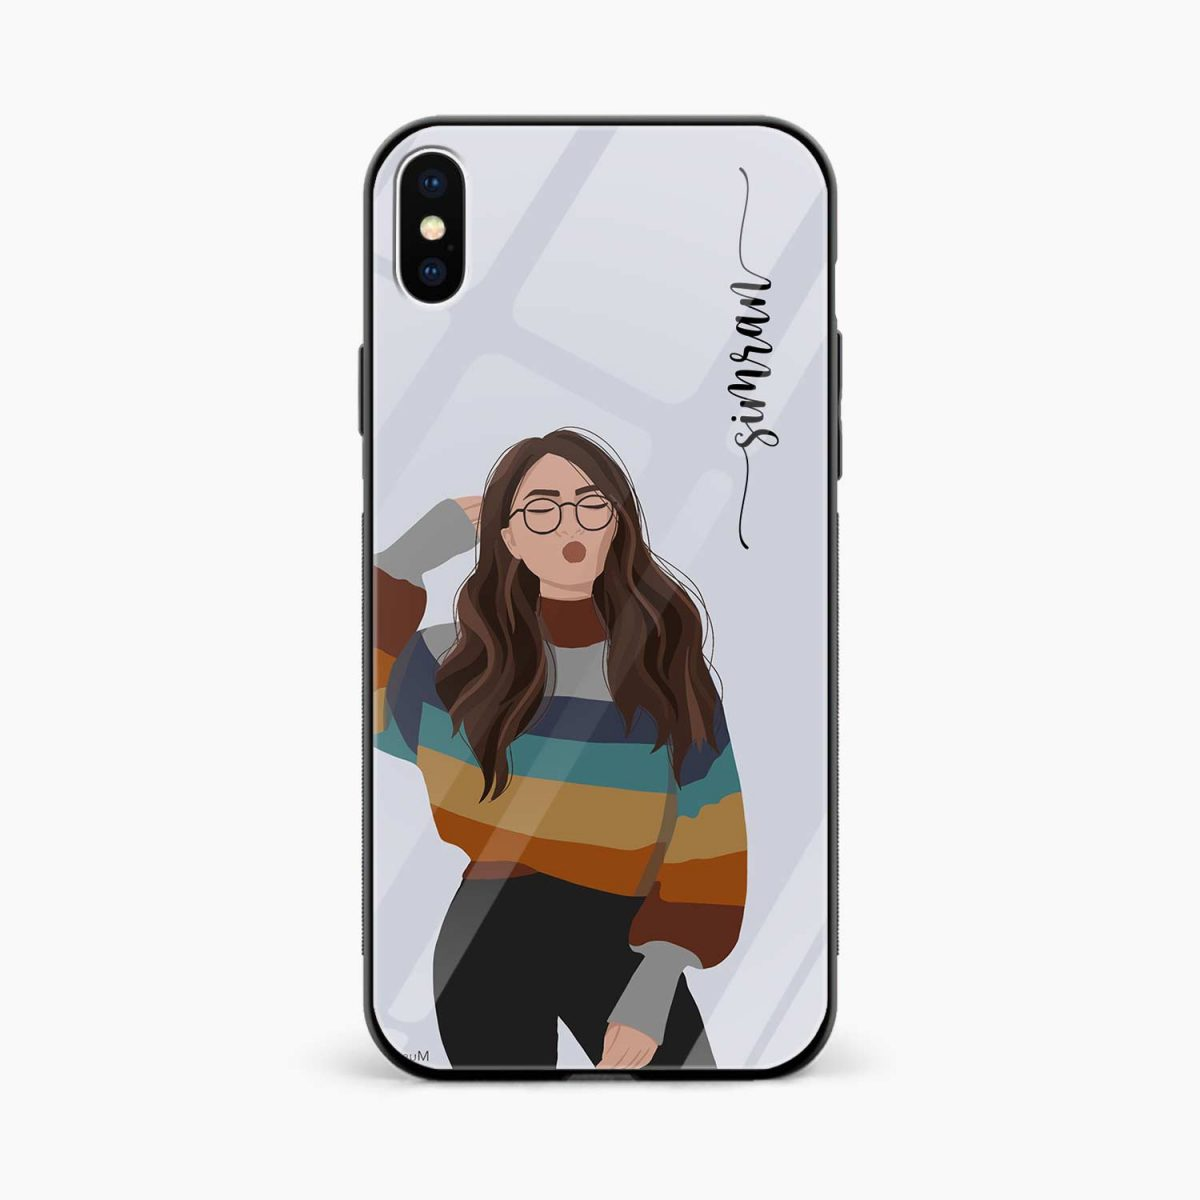 its me front view apple iphone x xs max back cover